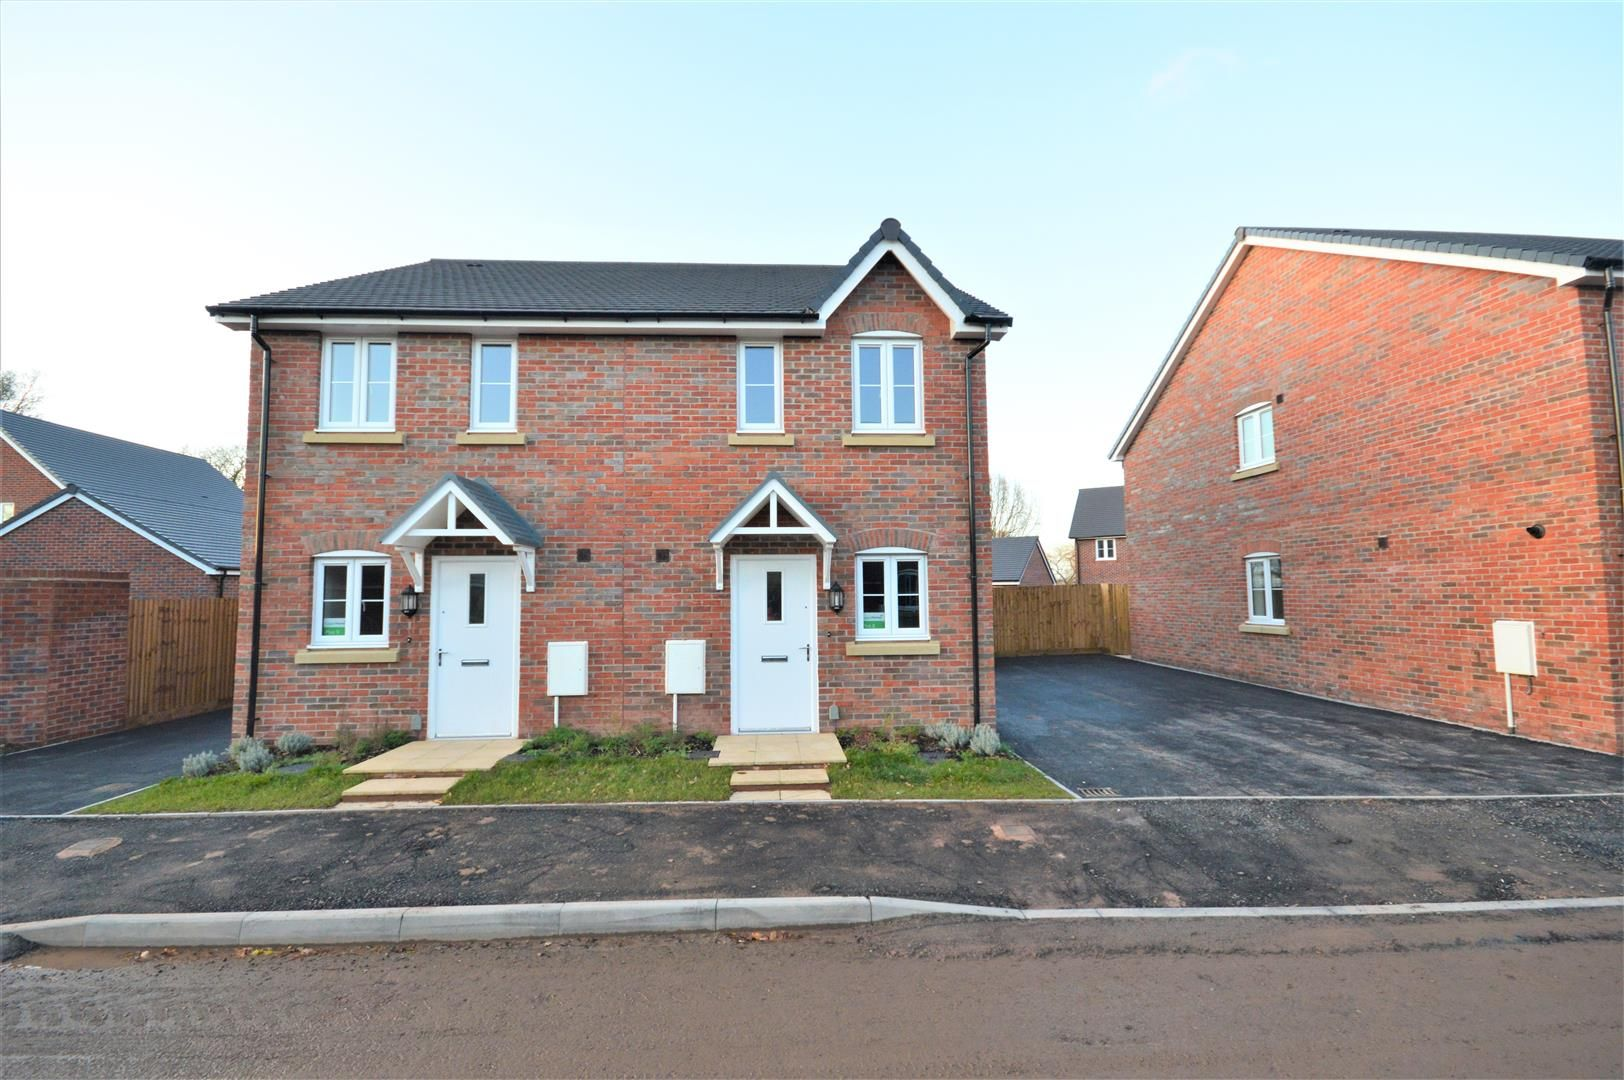 2 bed semi-detached for sale in Kingstone 1